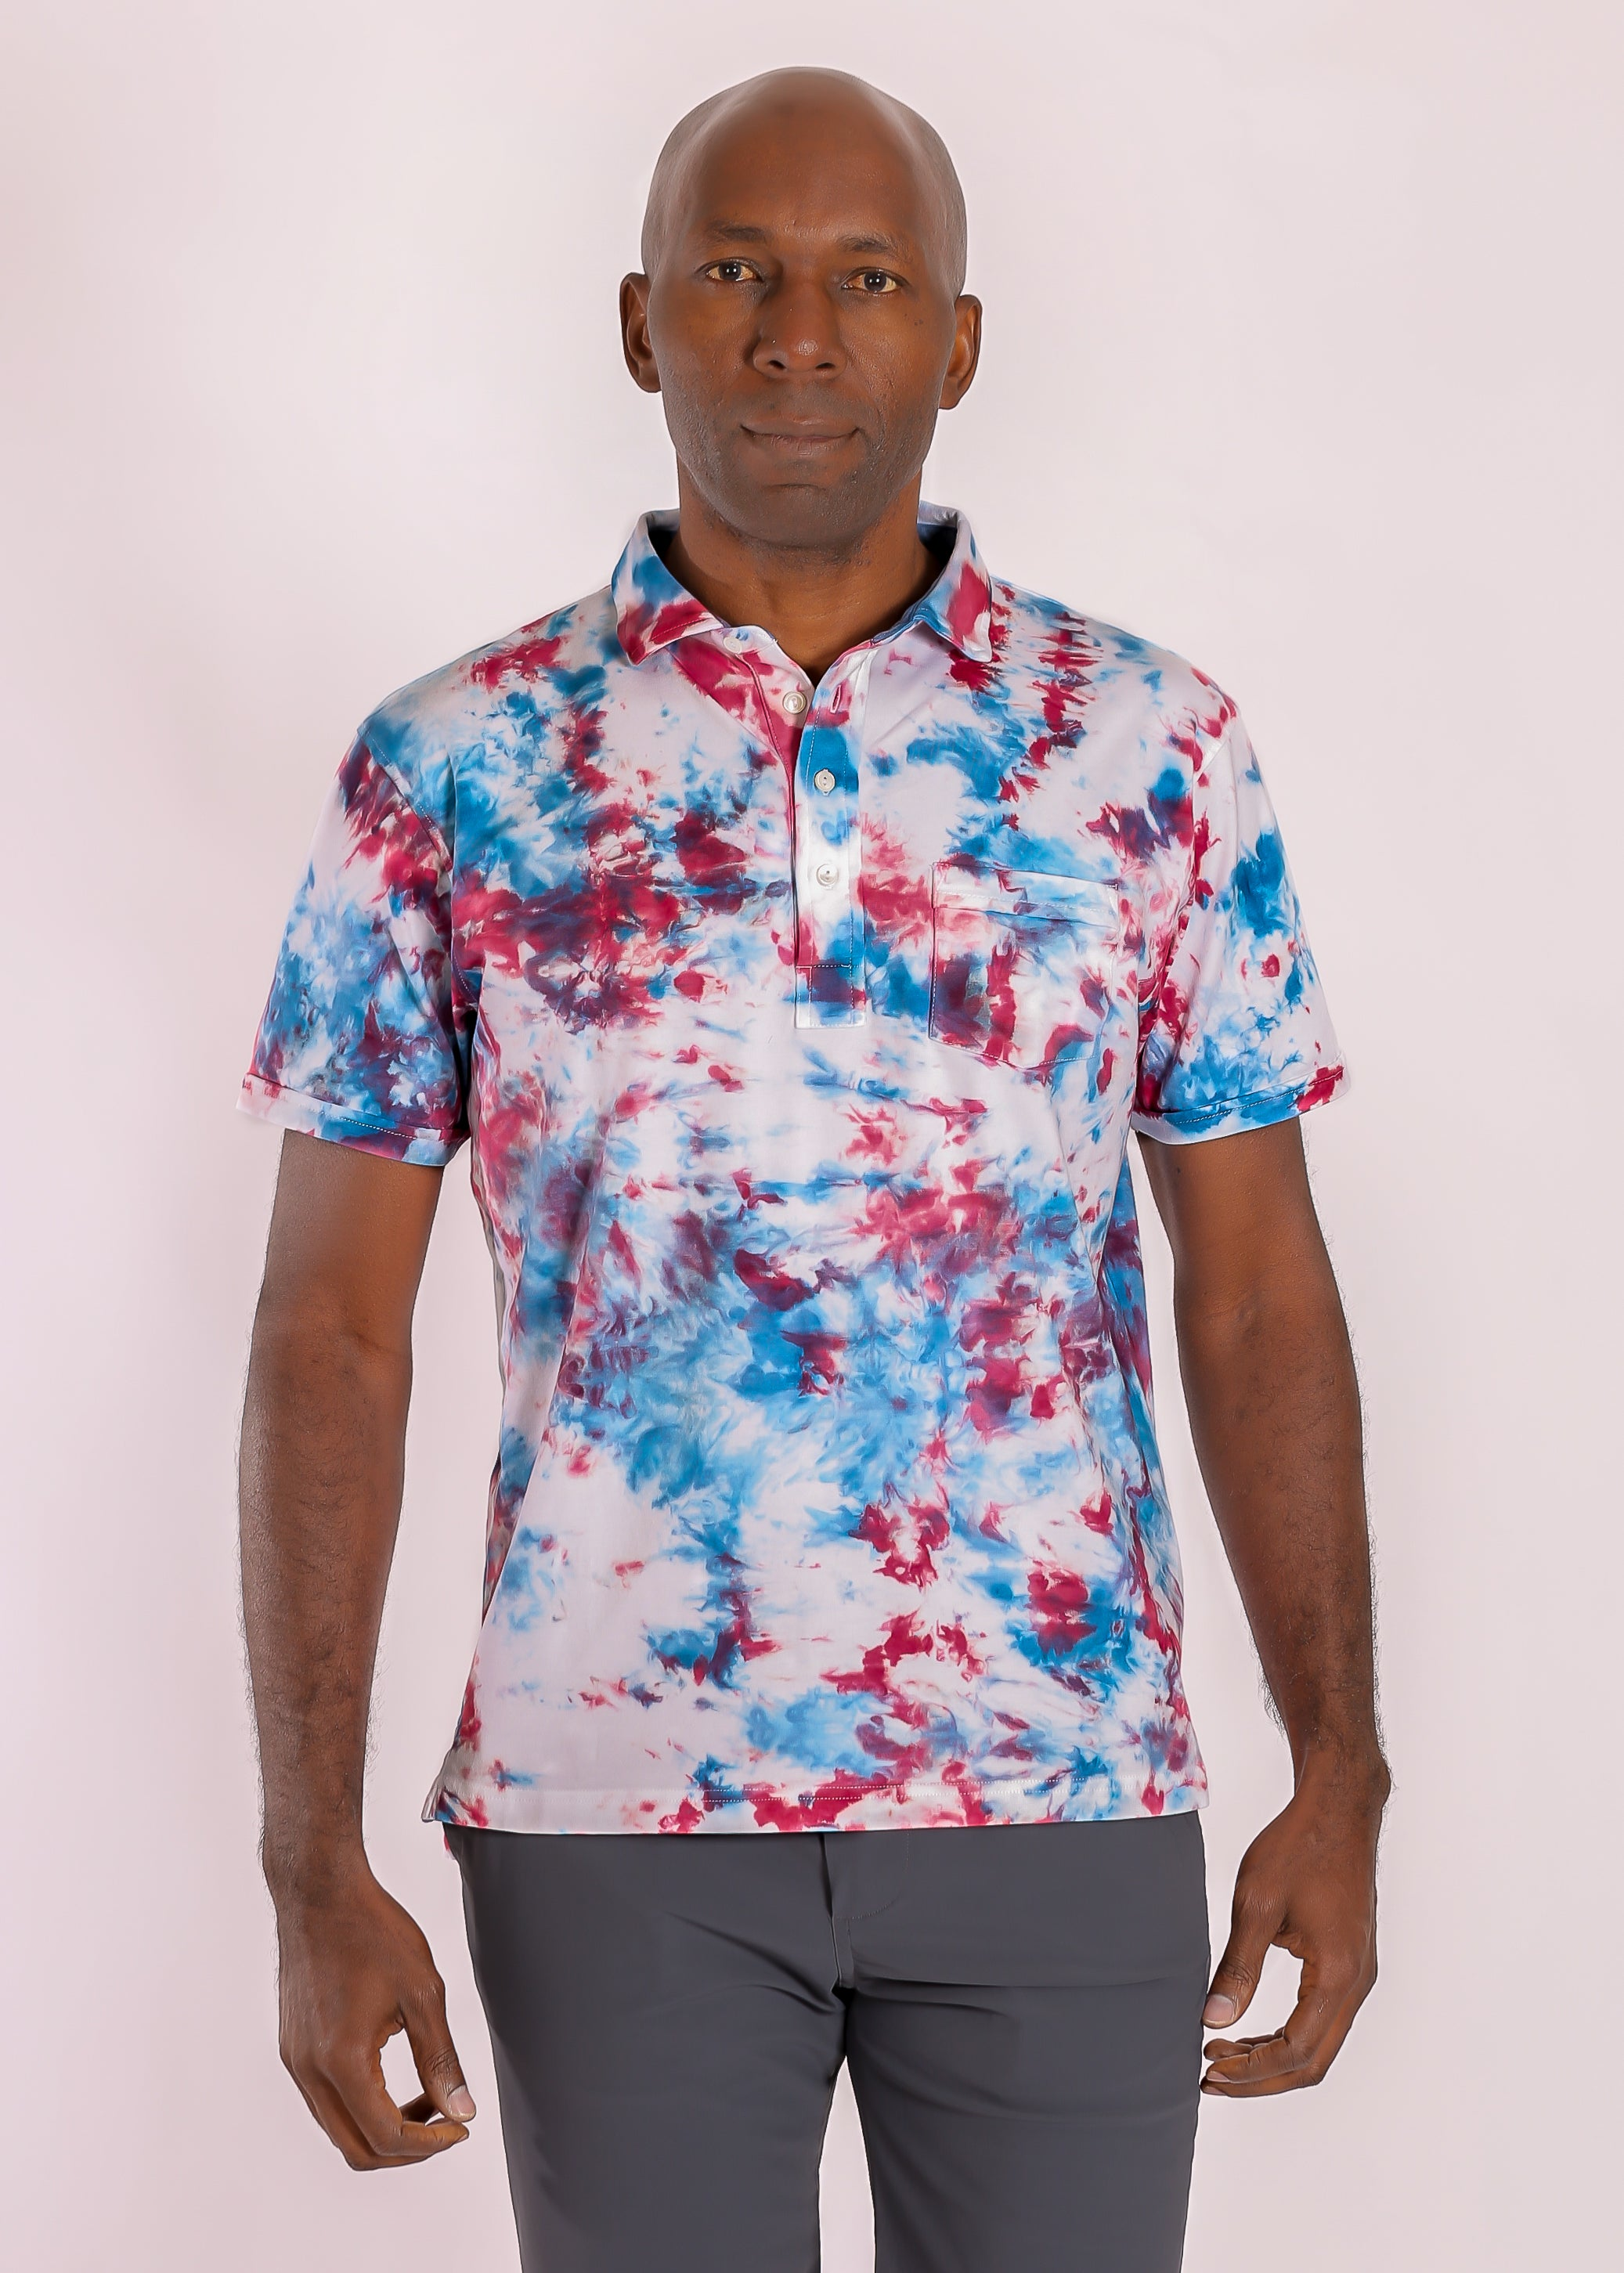 Morgan Luxe Polo with Pocket - Red, White & Blue Tie Dye